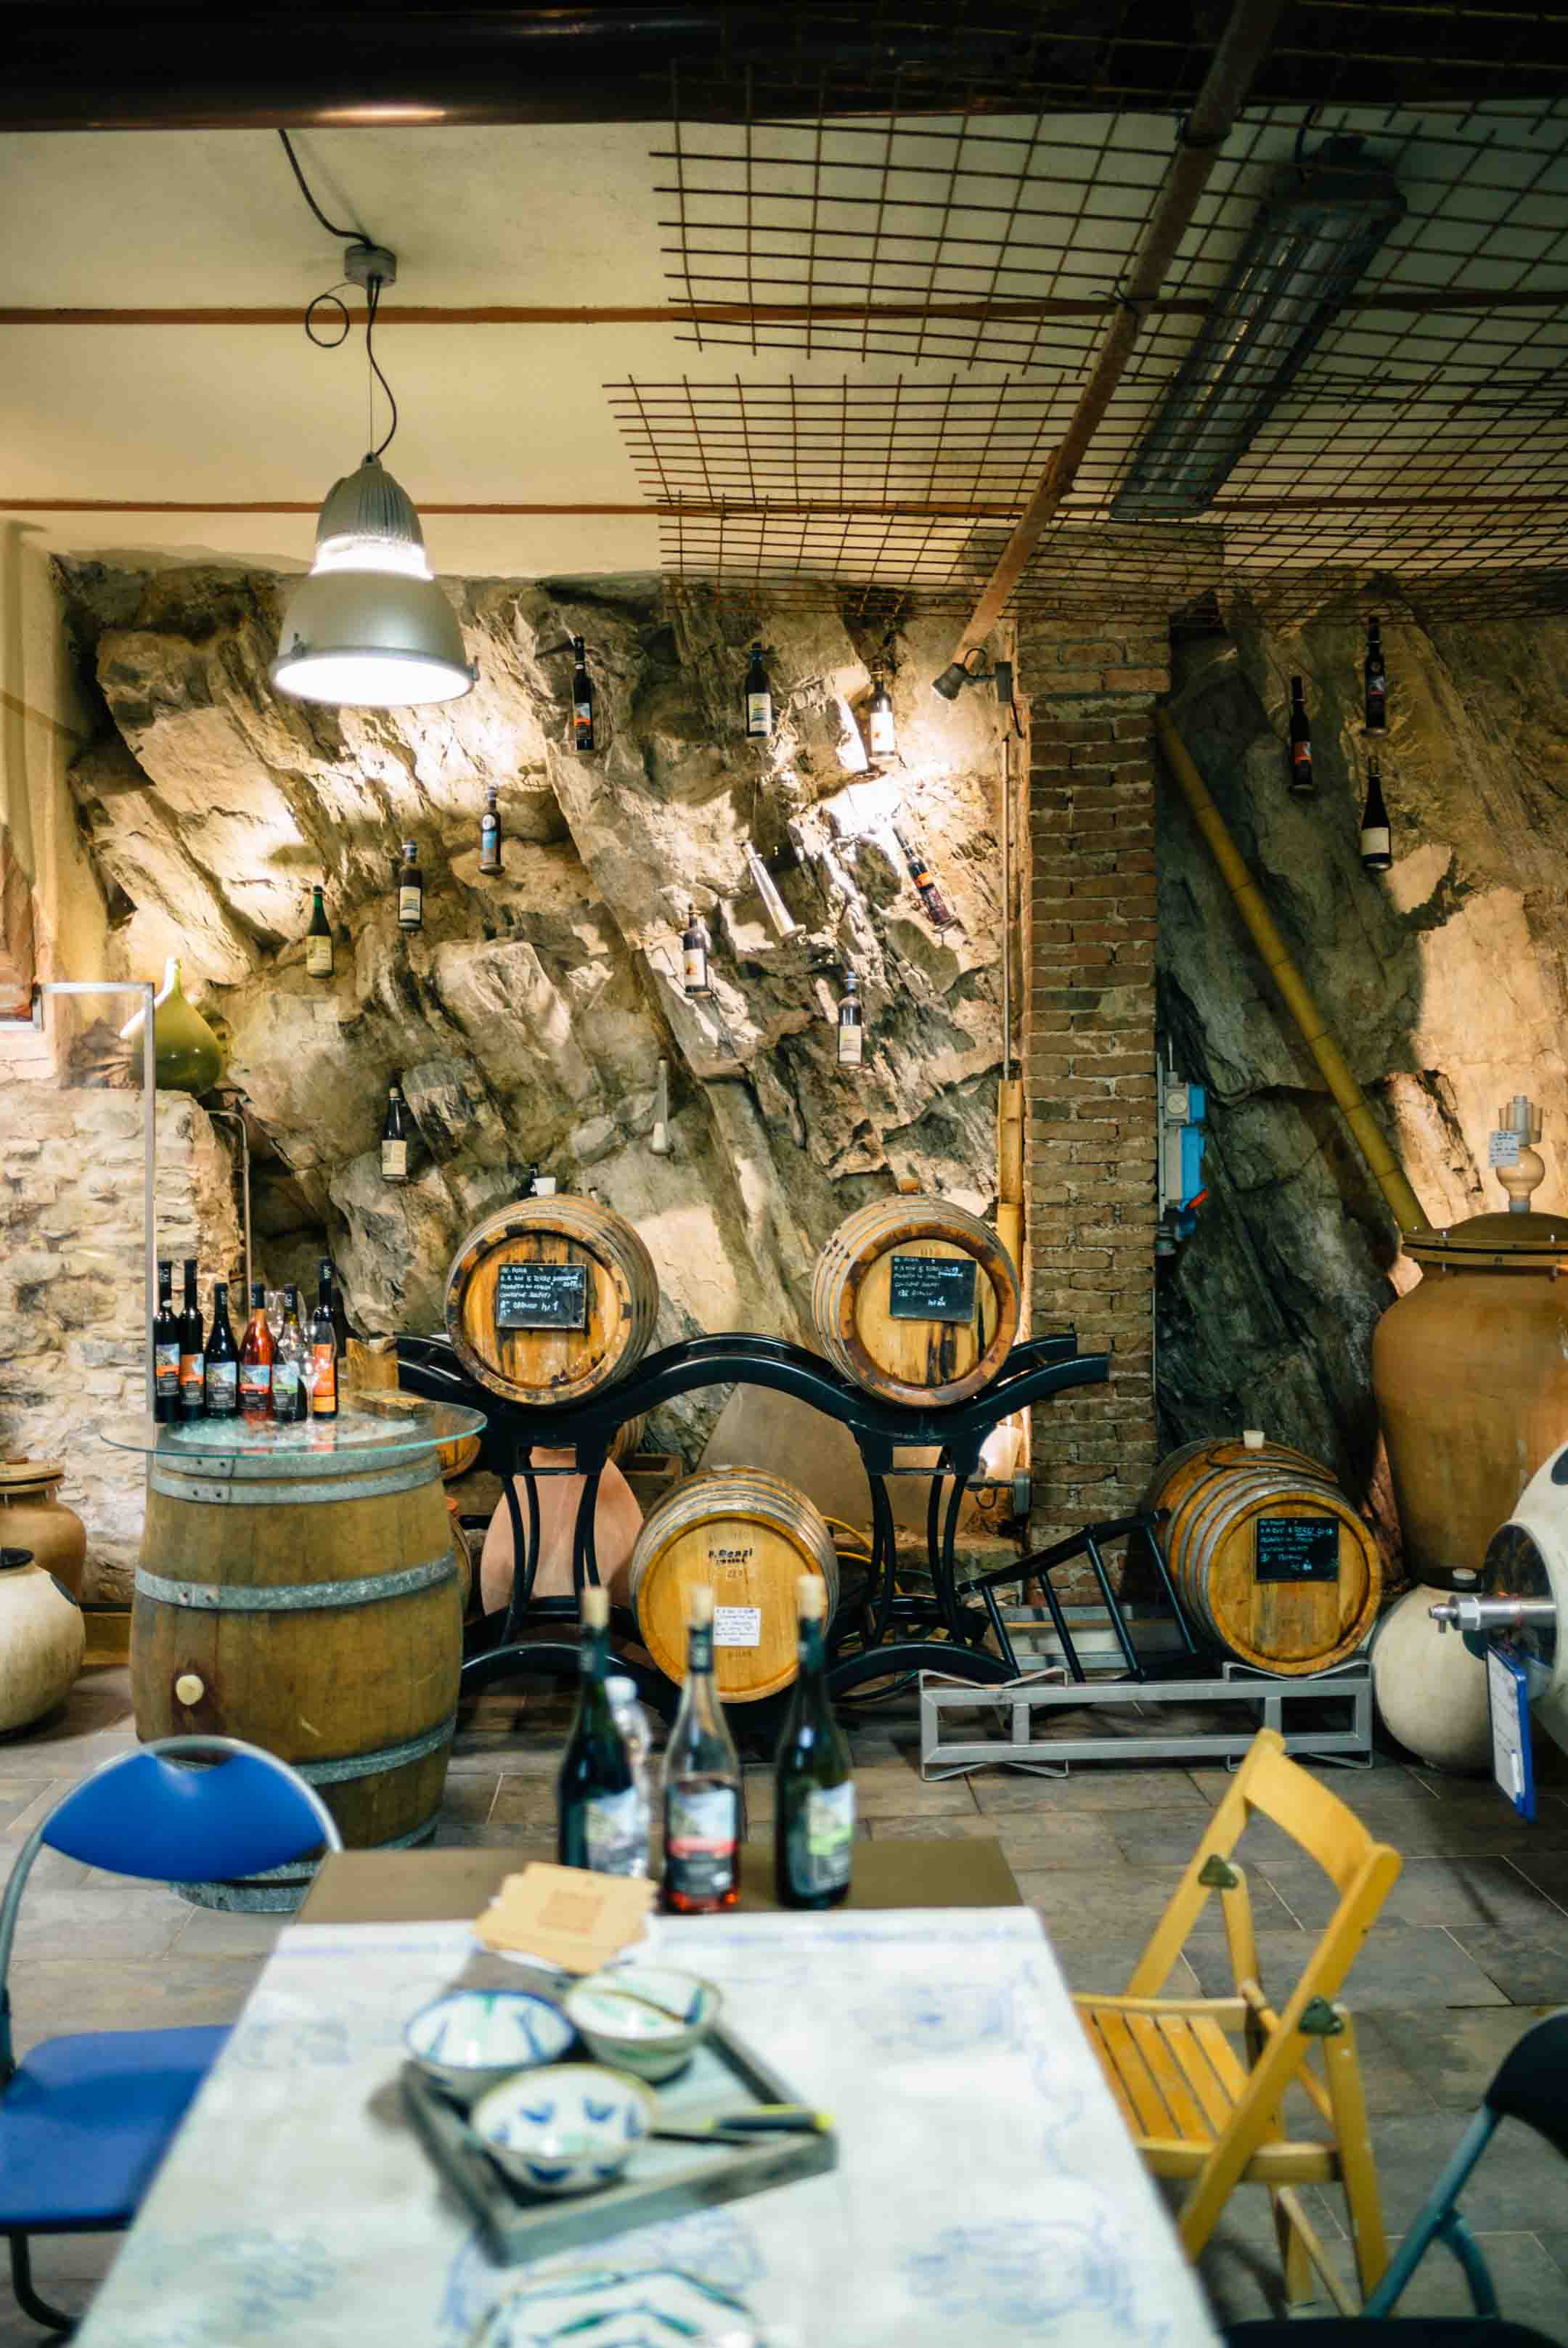 Visit the best winery in Cinque Terre, The Taste SF recommends to book an appointment for a wine tasting with Heydi Bonanini, winemaker at Azienda Agricola Possa winery. He ages his wine in chestnut and acacia barrels.